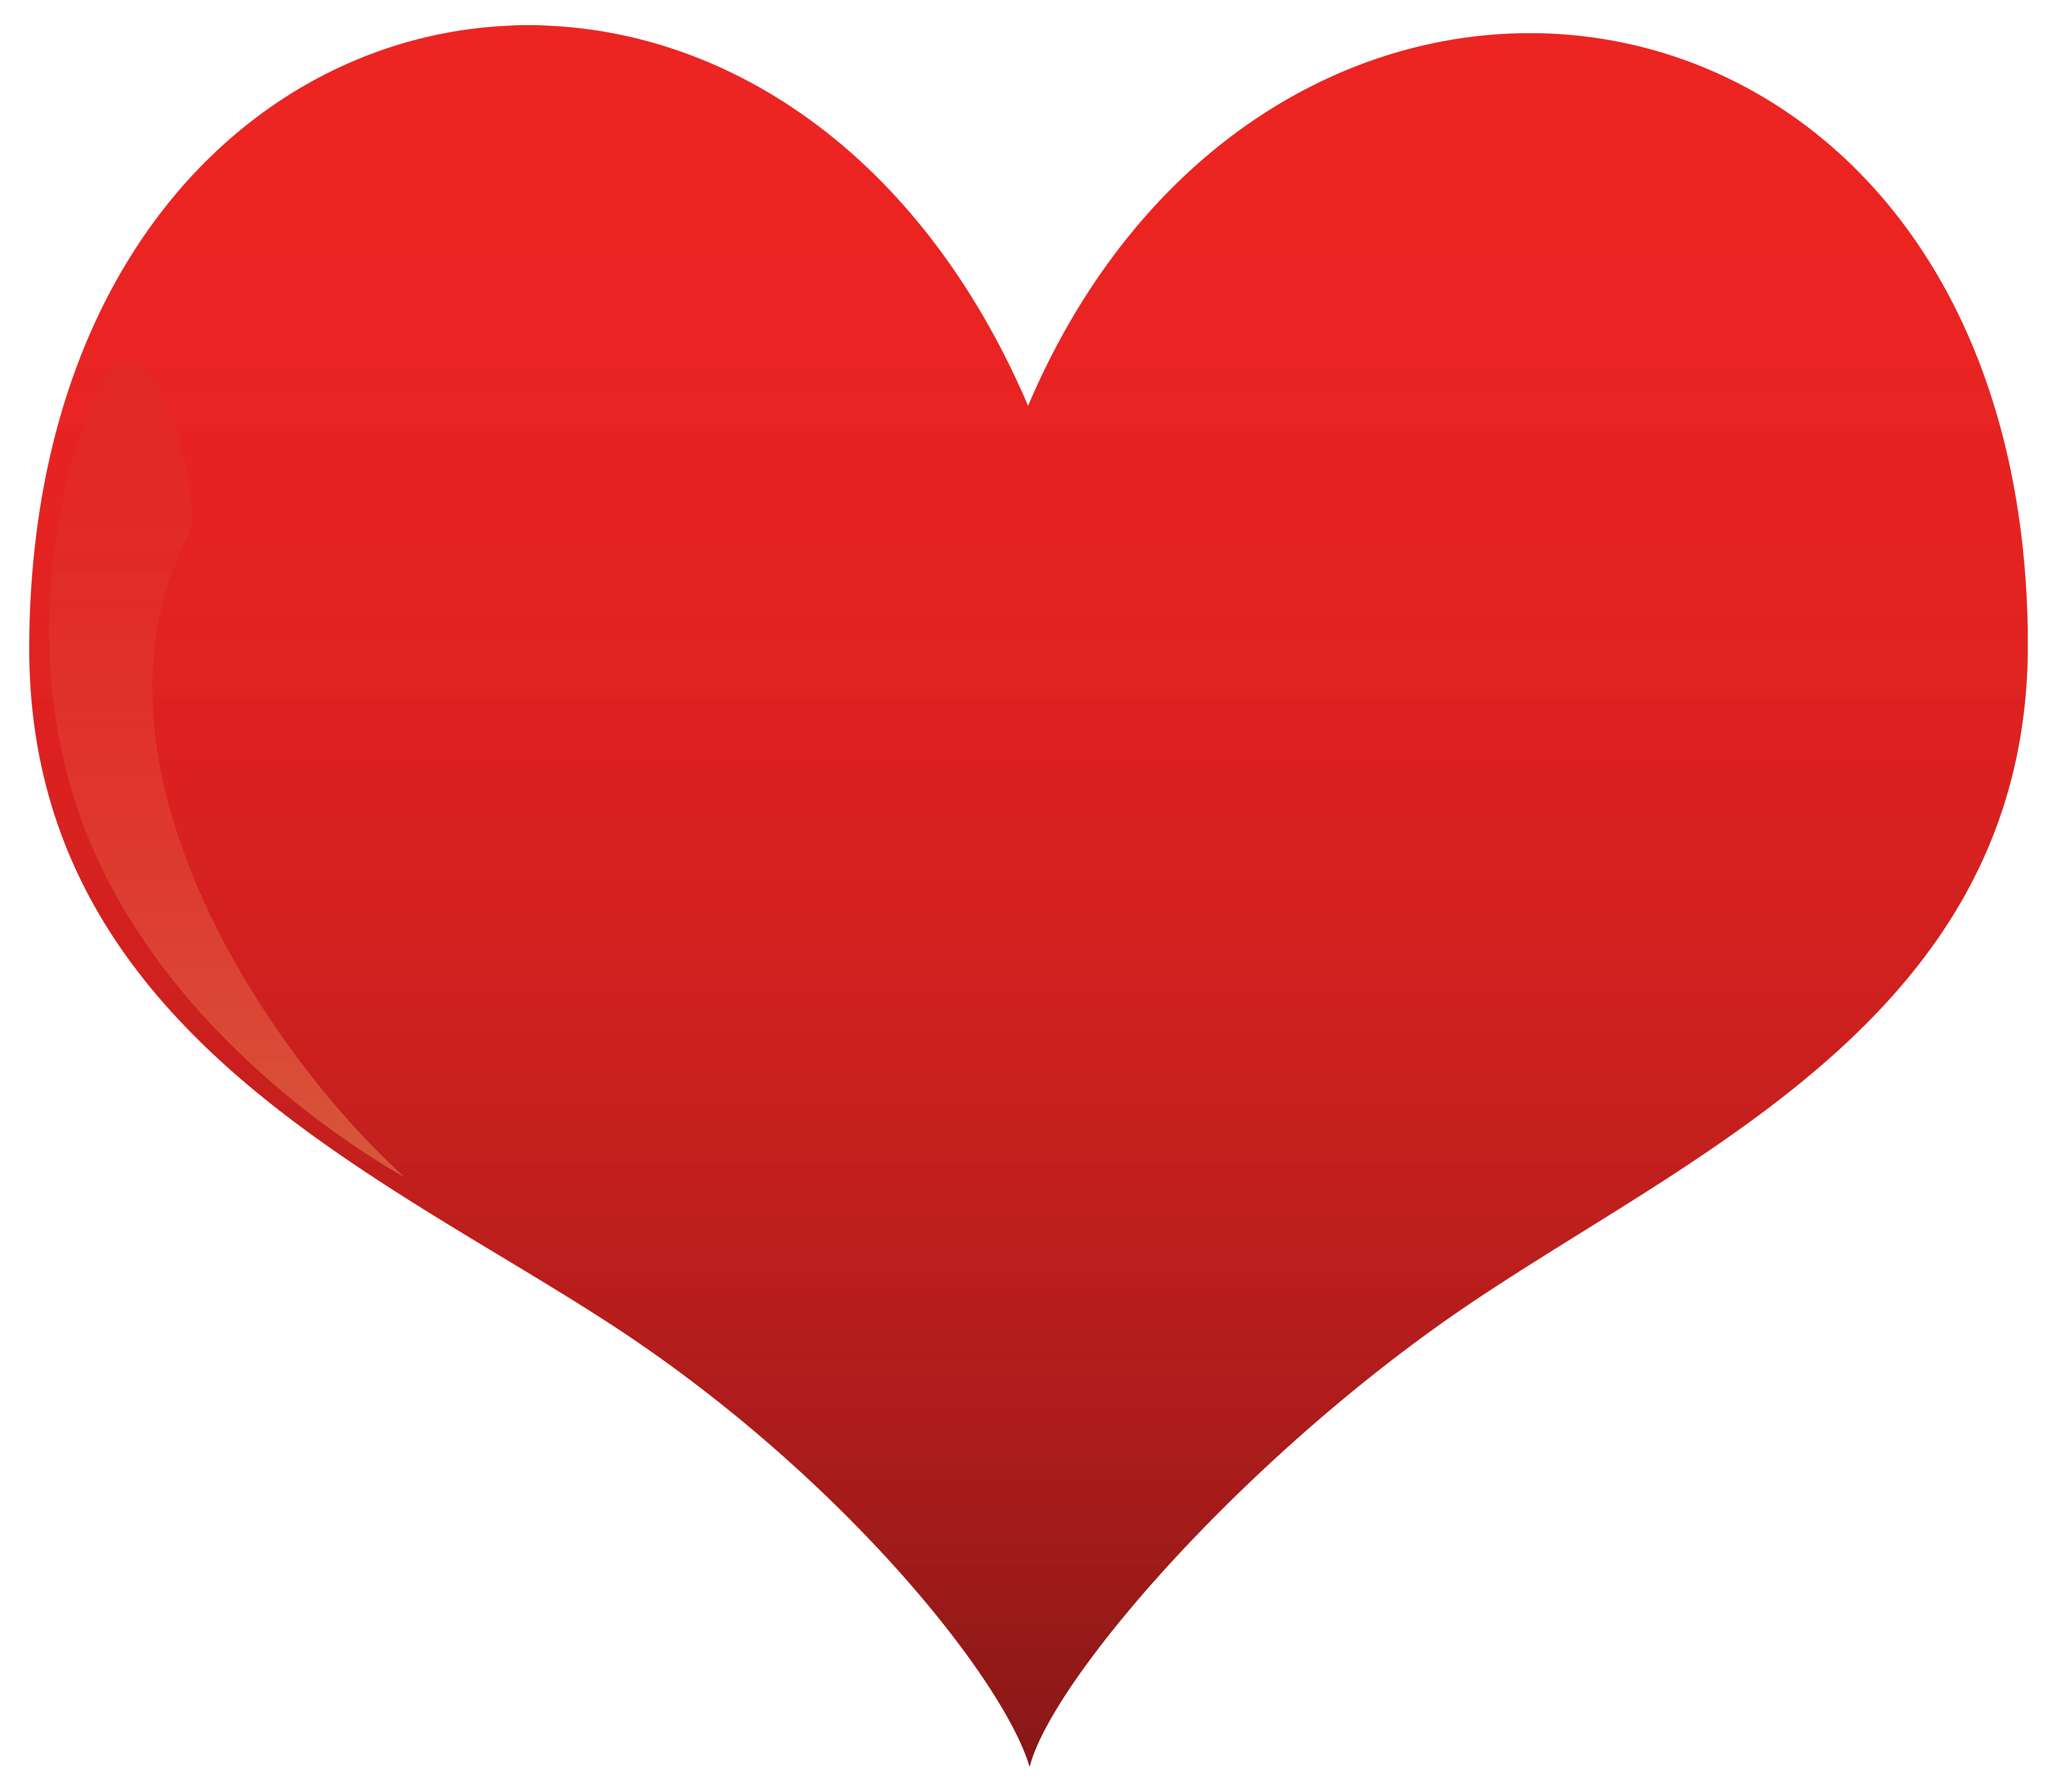 Classic heart clipart best. Hearts png jpg transparent download